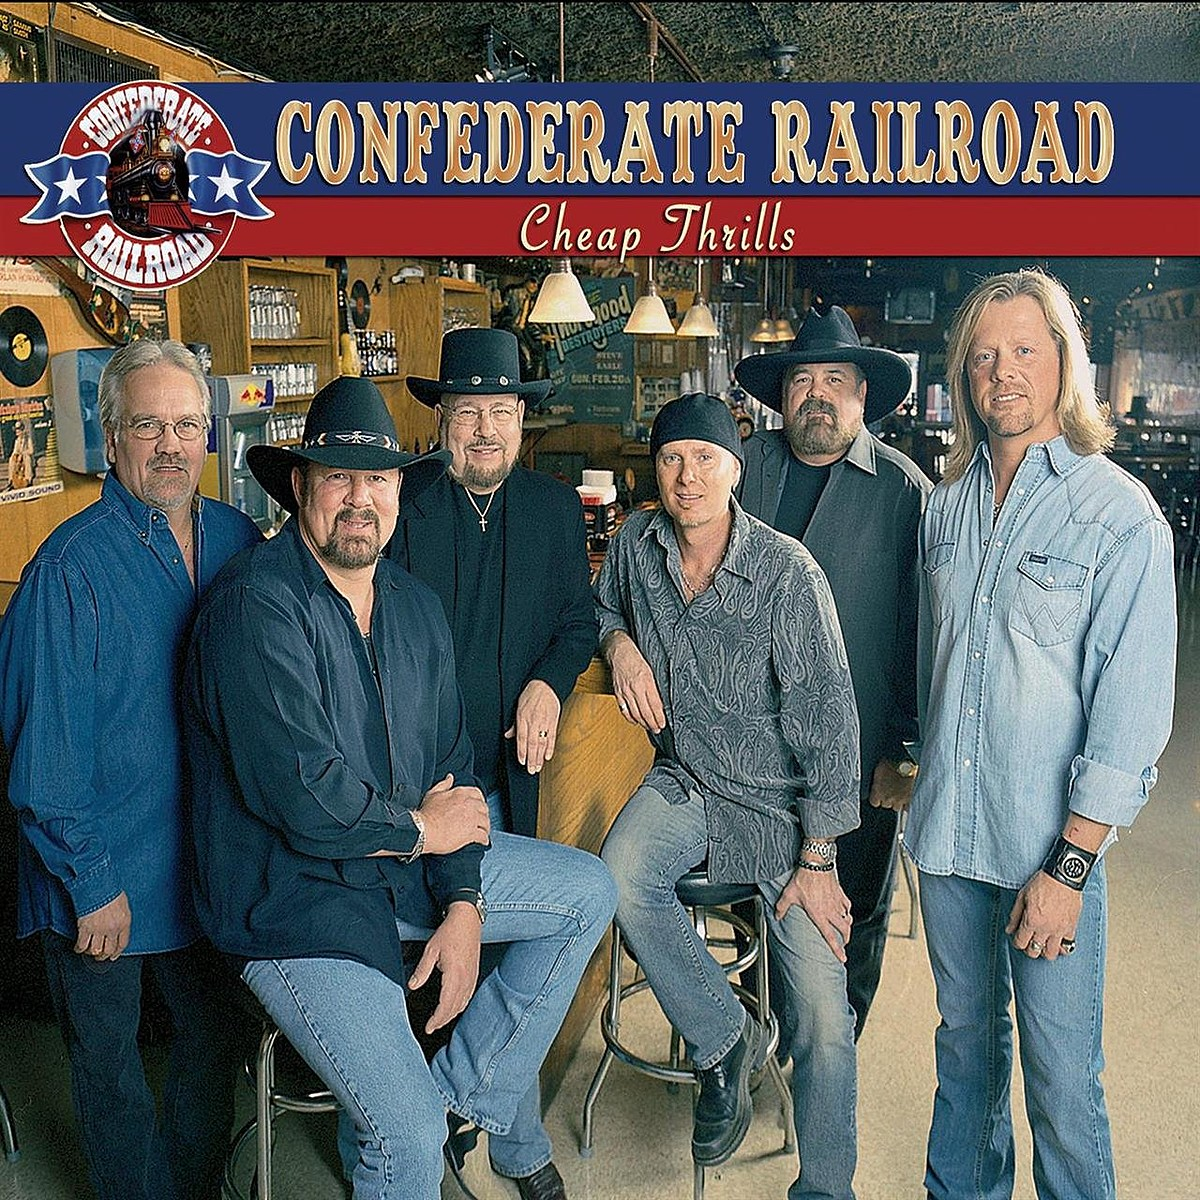 """Confederate Railroad dropped from fair due to band name; Charlie Daniels blames """"political correctness"""""""